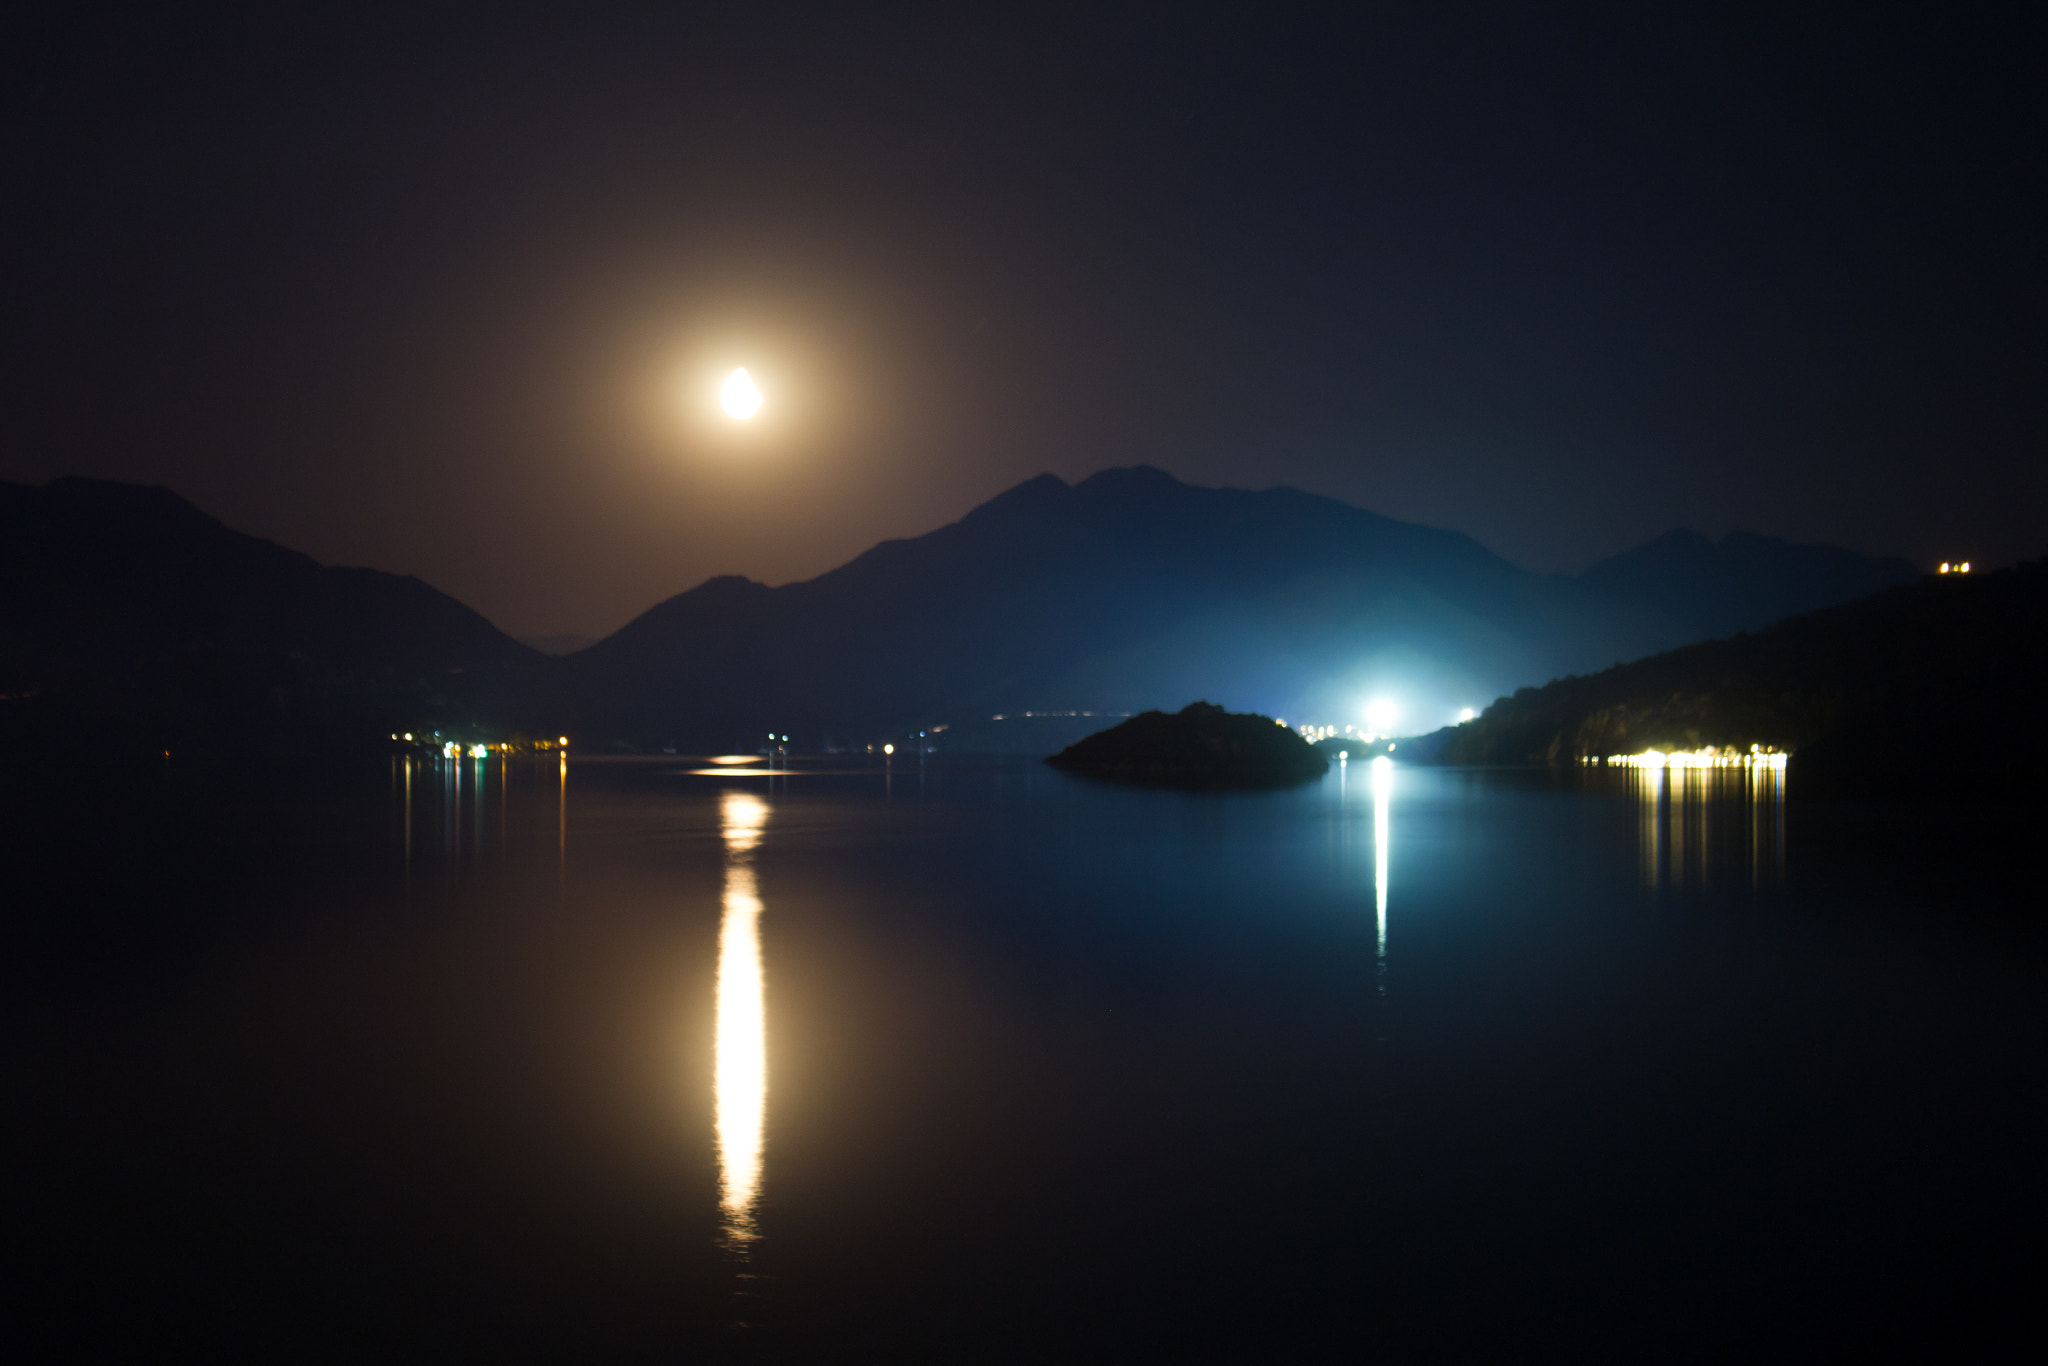 Photograph Moon over Marmaris by Pete Griffiths on 500px